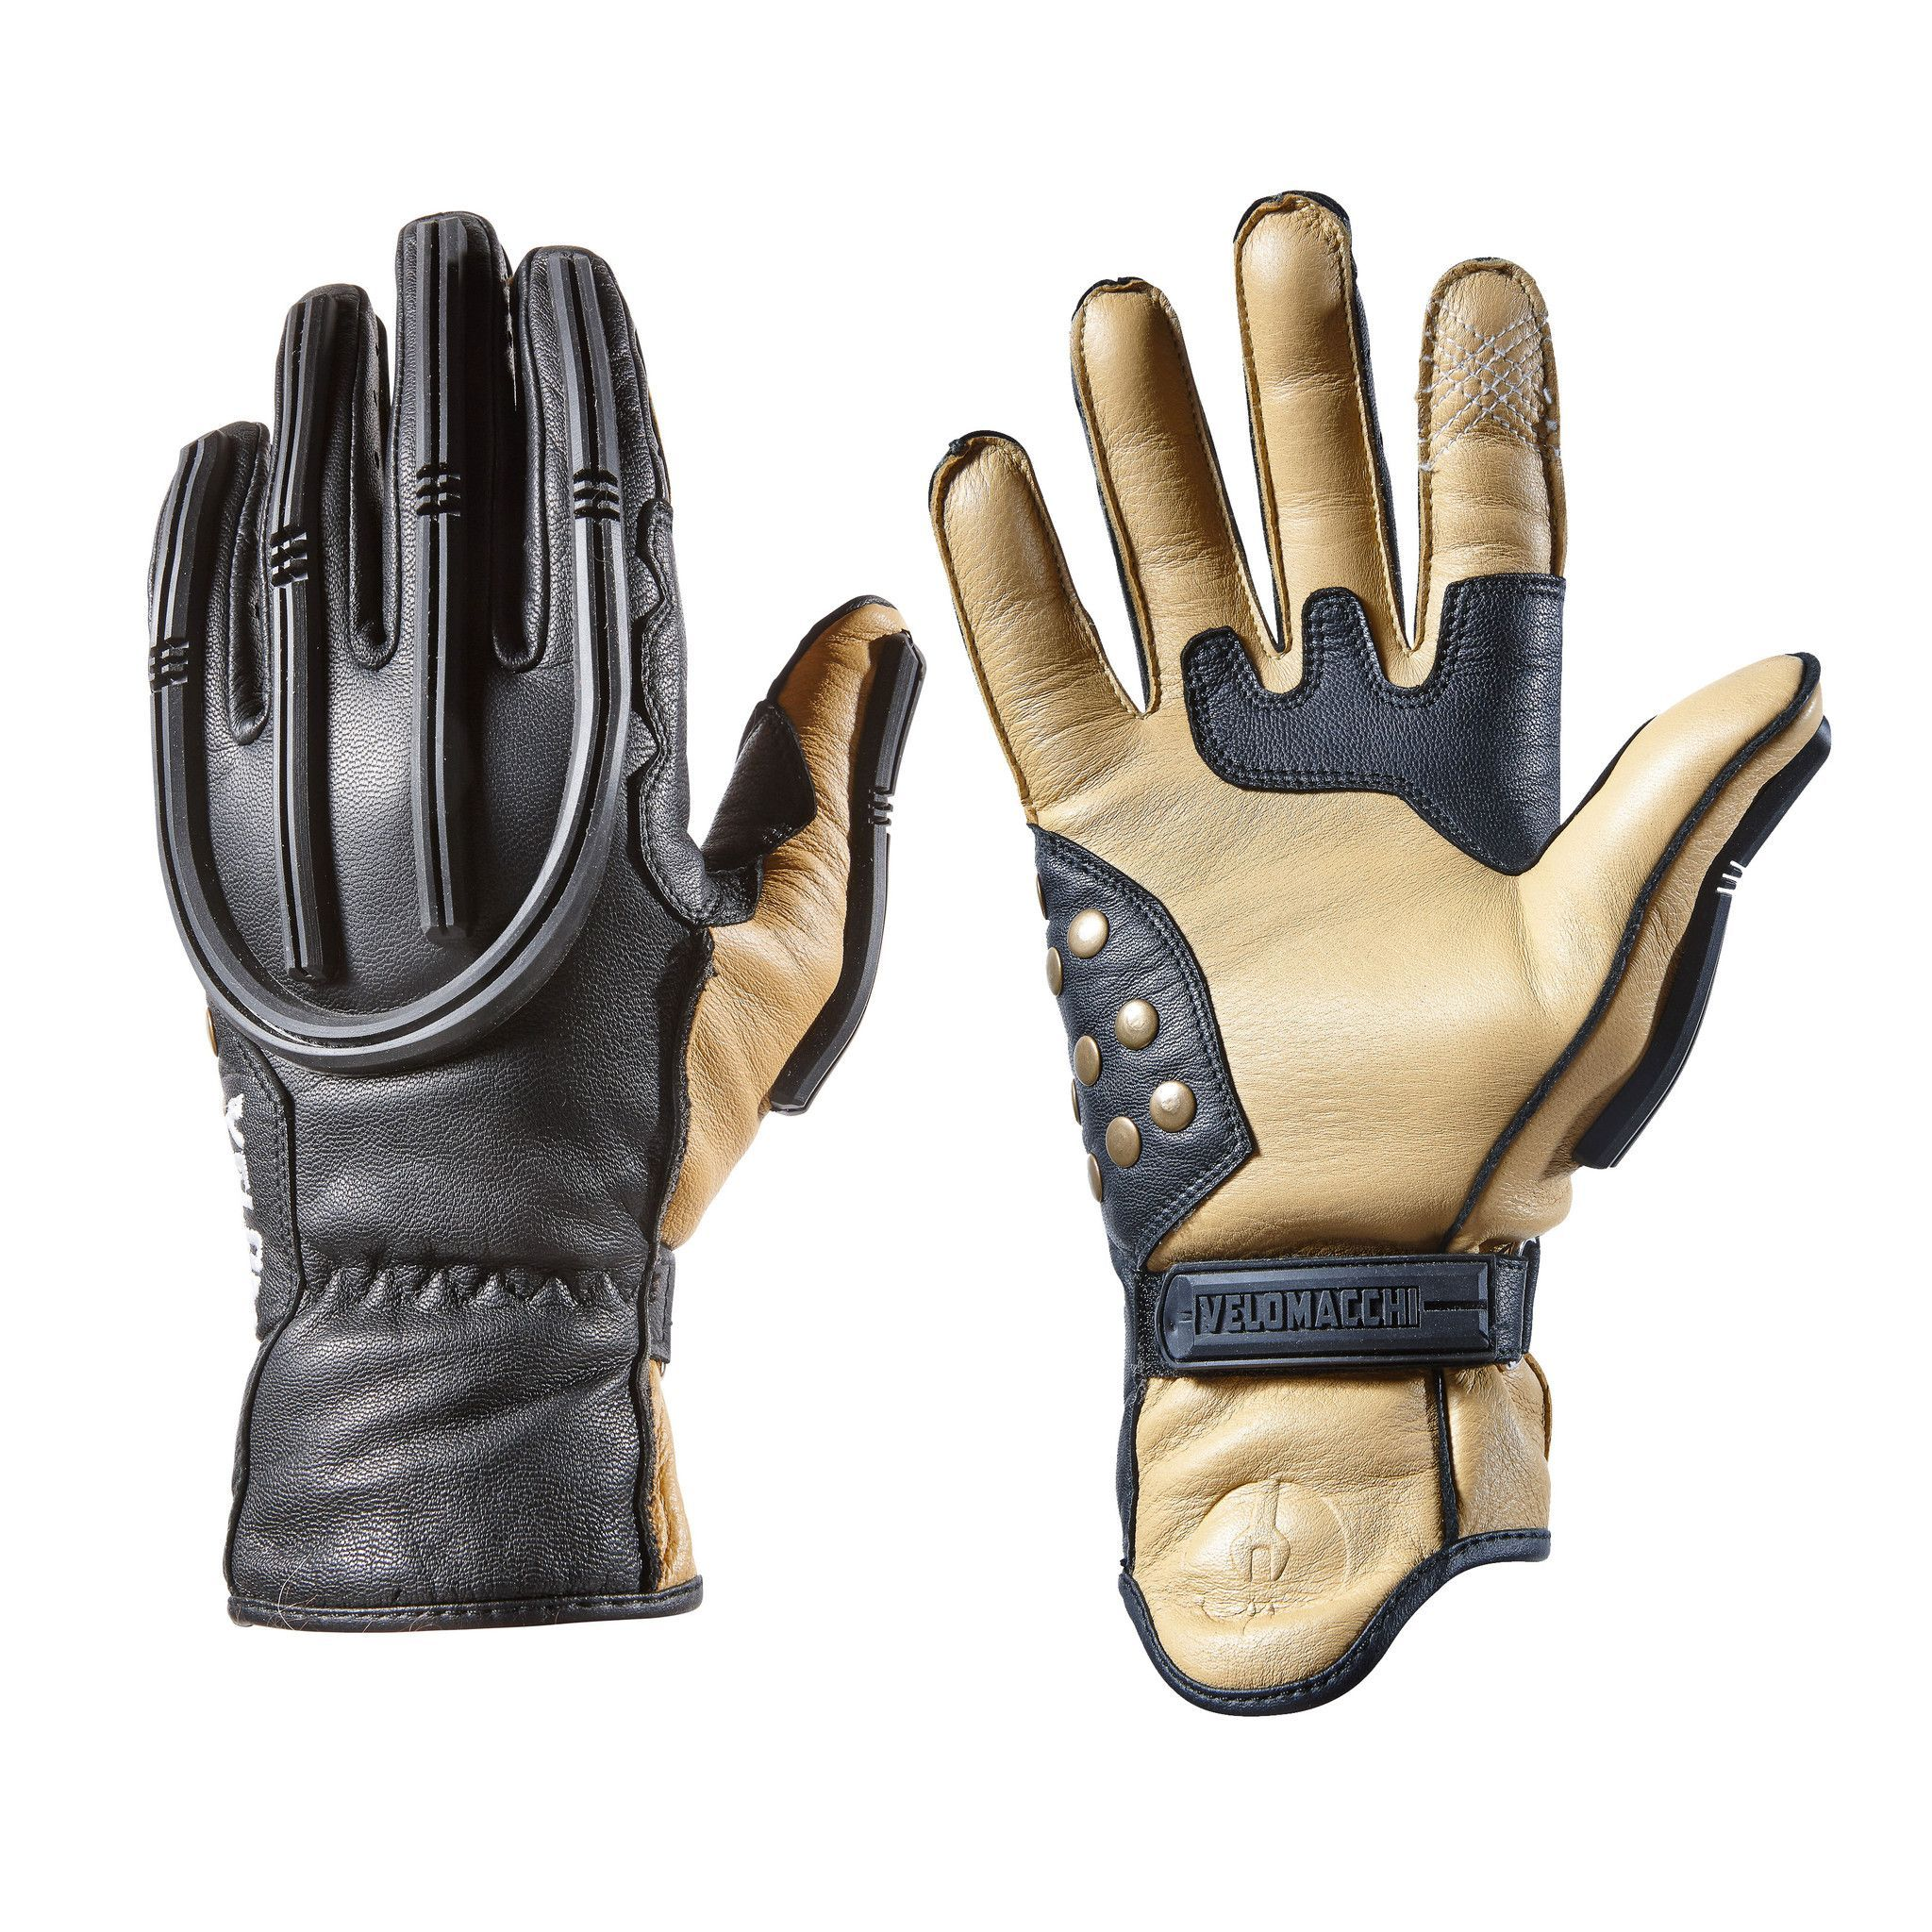 Motorcycle gloves nyc - Gloves